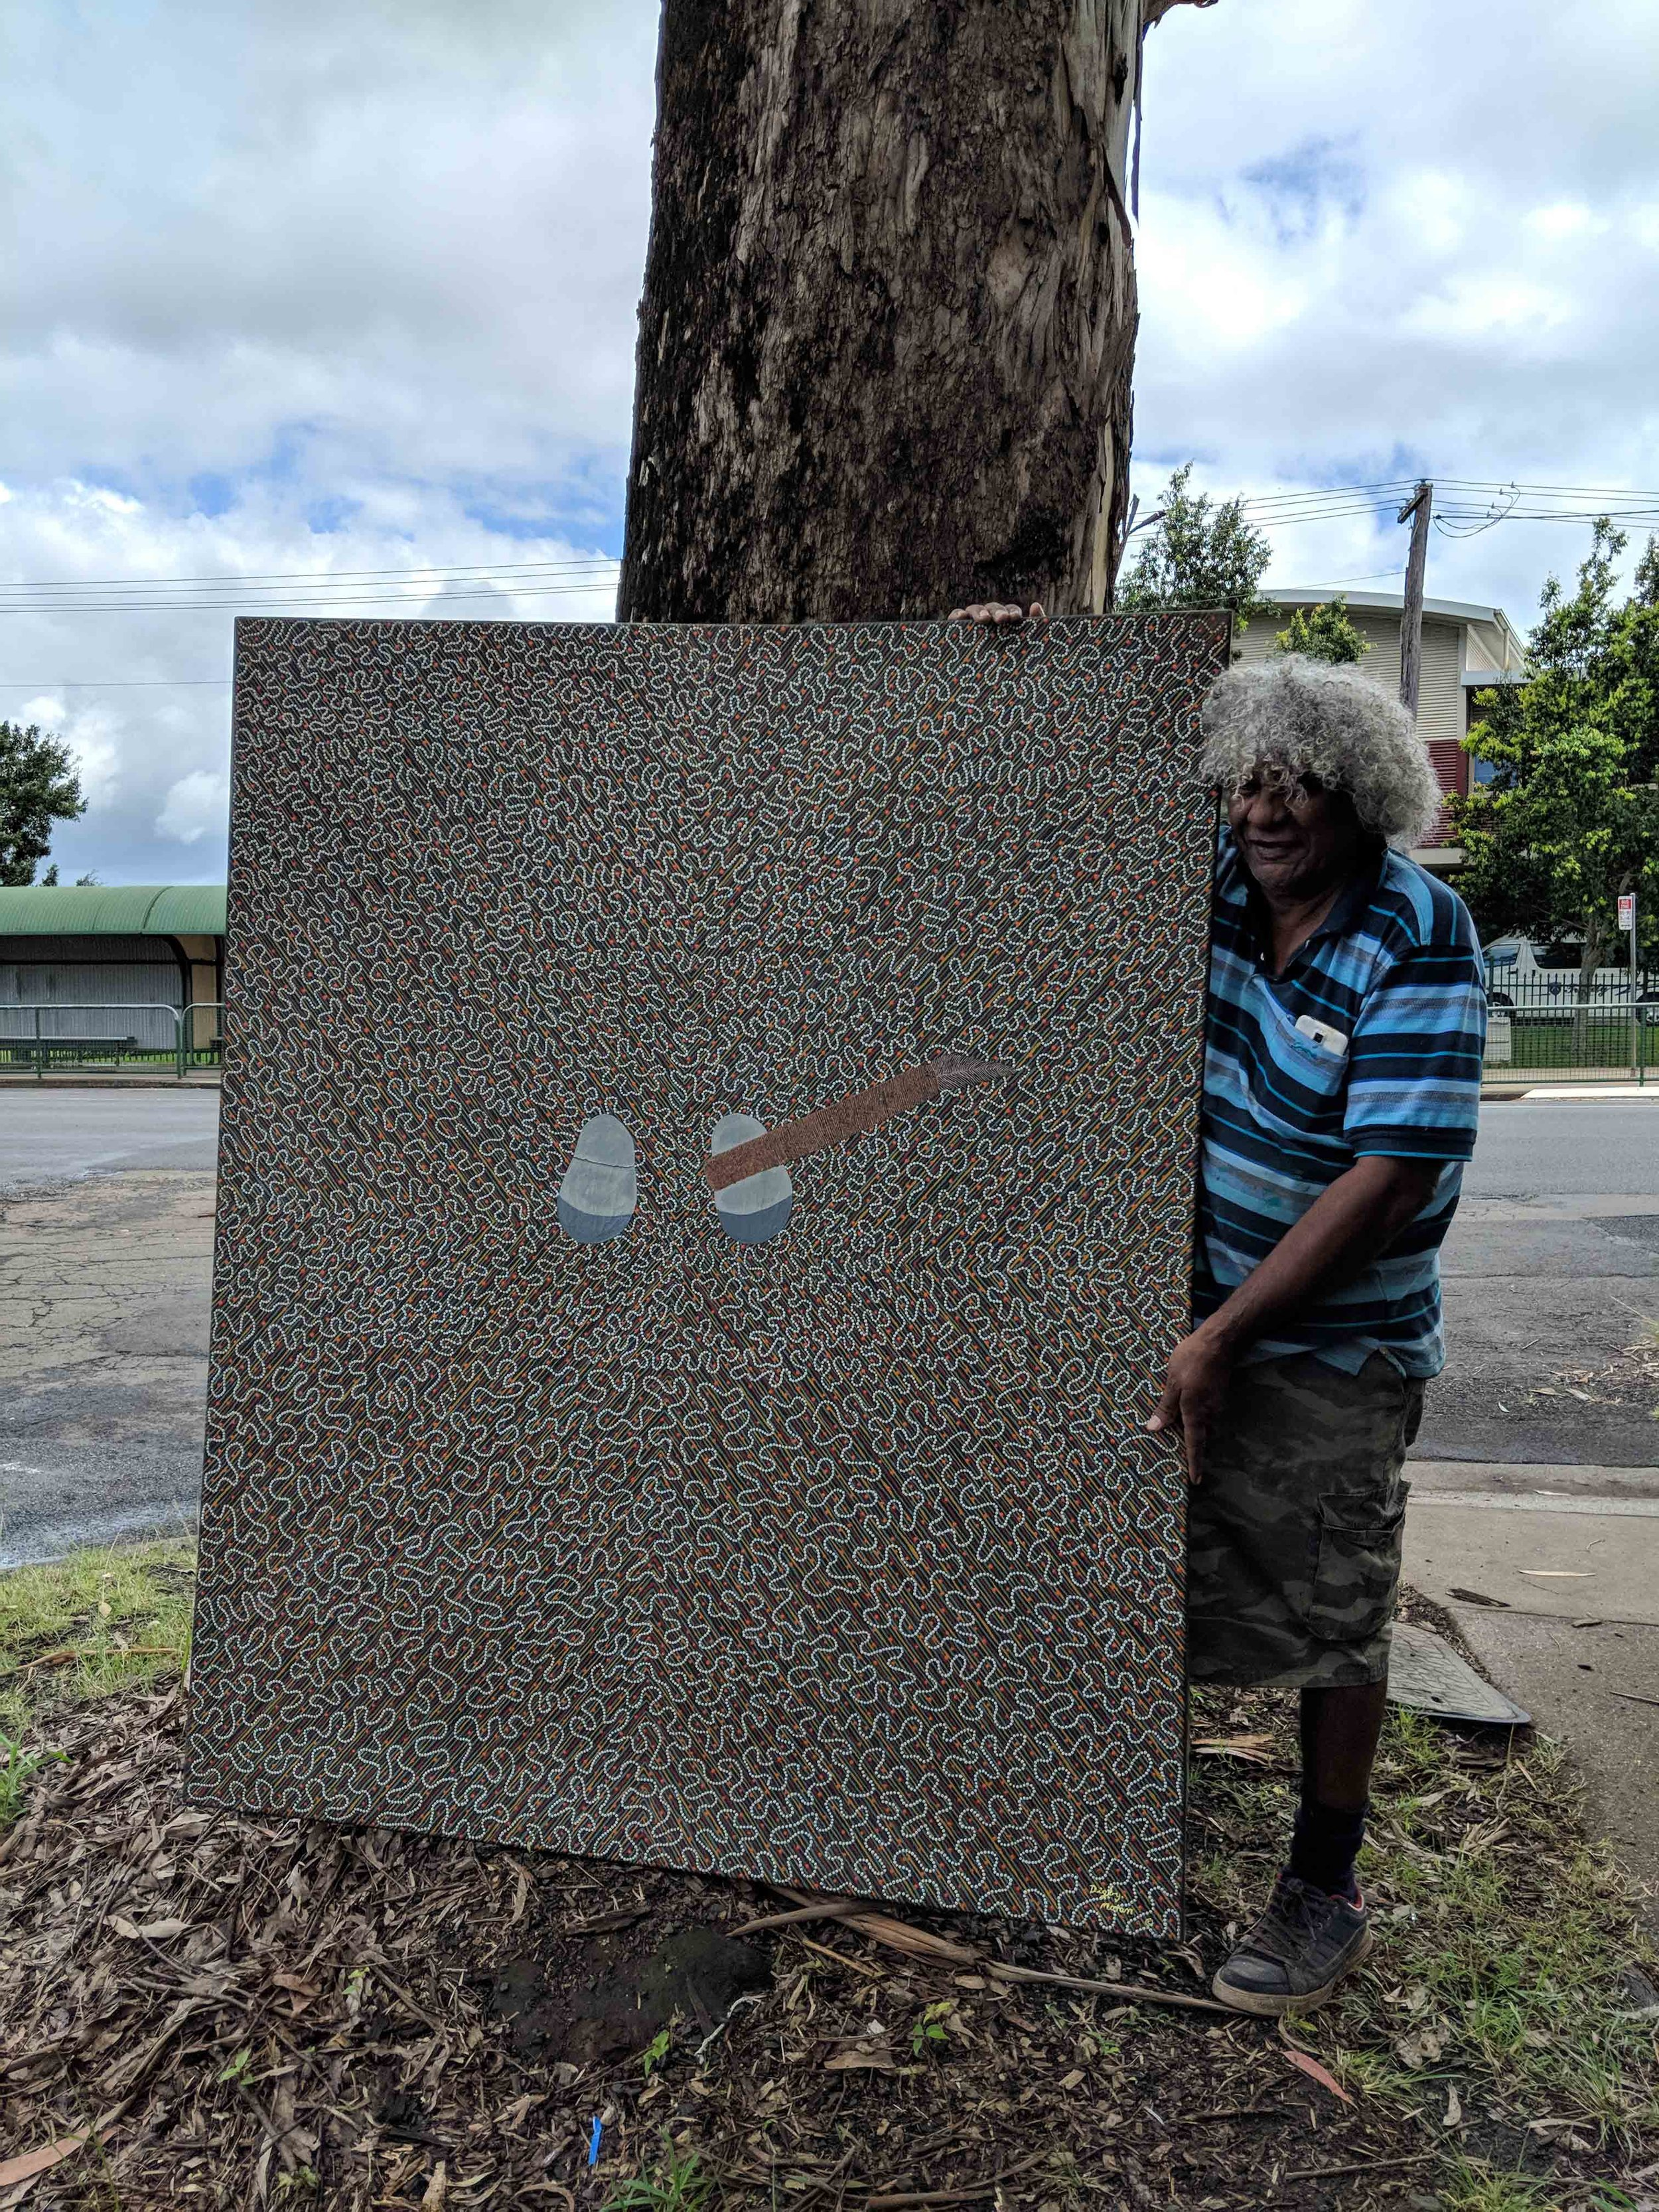 Digby Moran with his painting Bundjalung Stone Axe Gift of Margot Anthony AM, through the Tweed Regional Gallery Foundation Ltd., 2018 © The artist